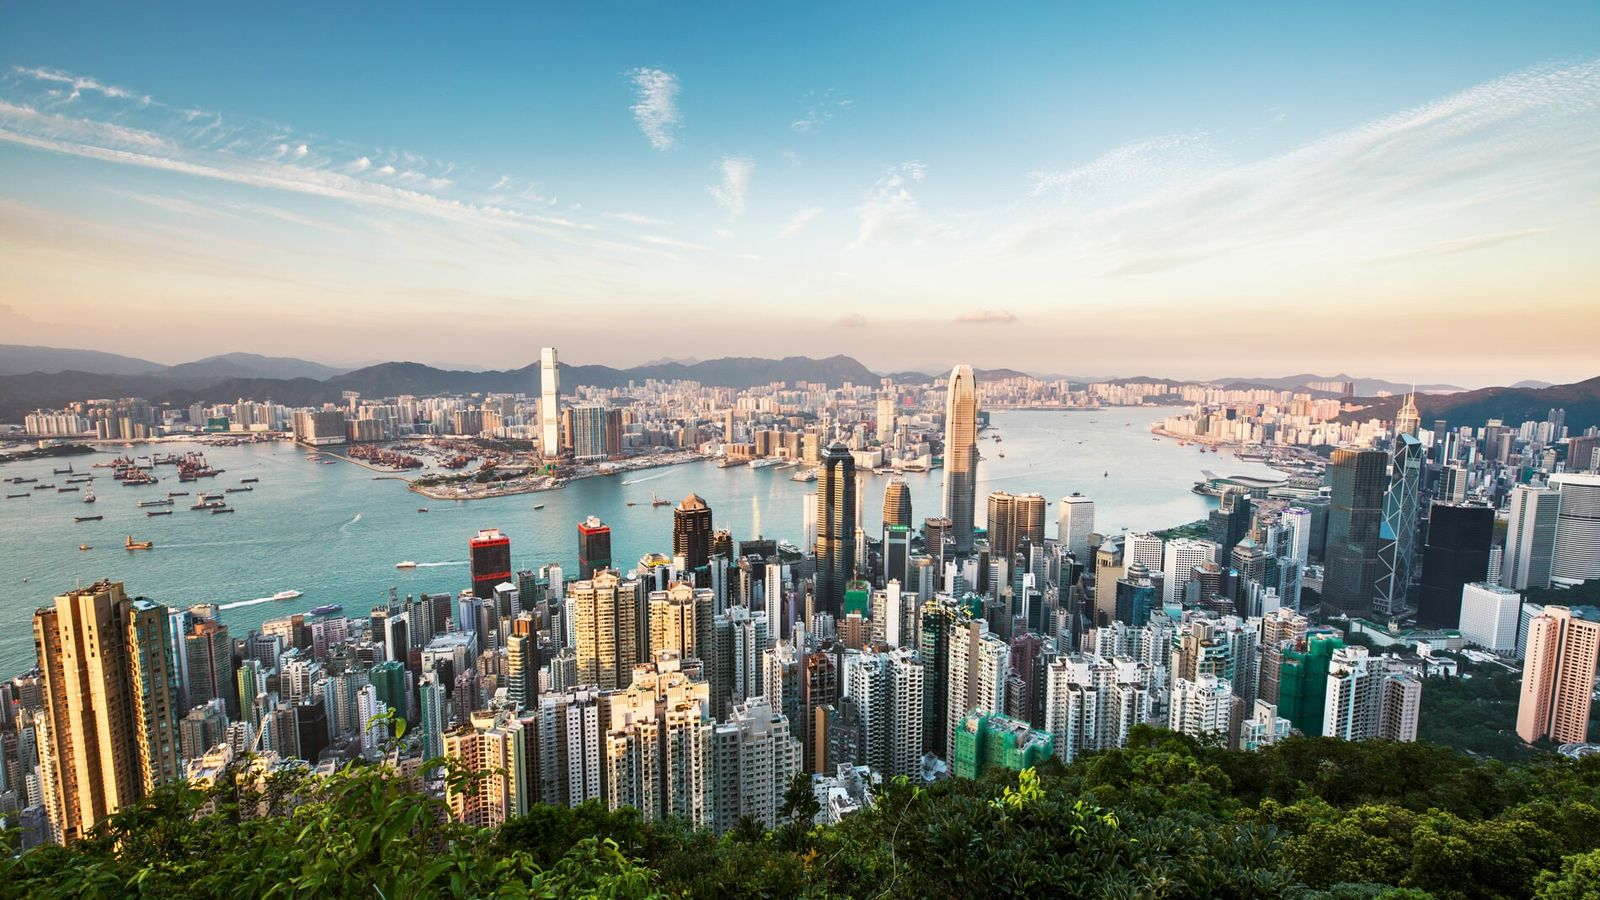 Thanks to its excellent and affordable transport system, Hong Kong's puzzle of scenery and skyscrapers is ...